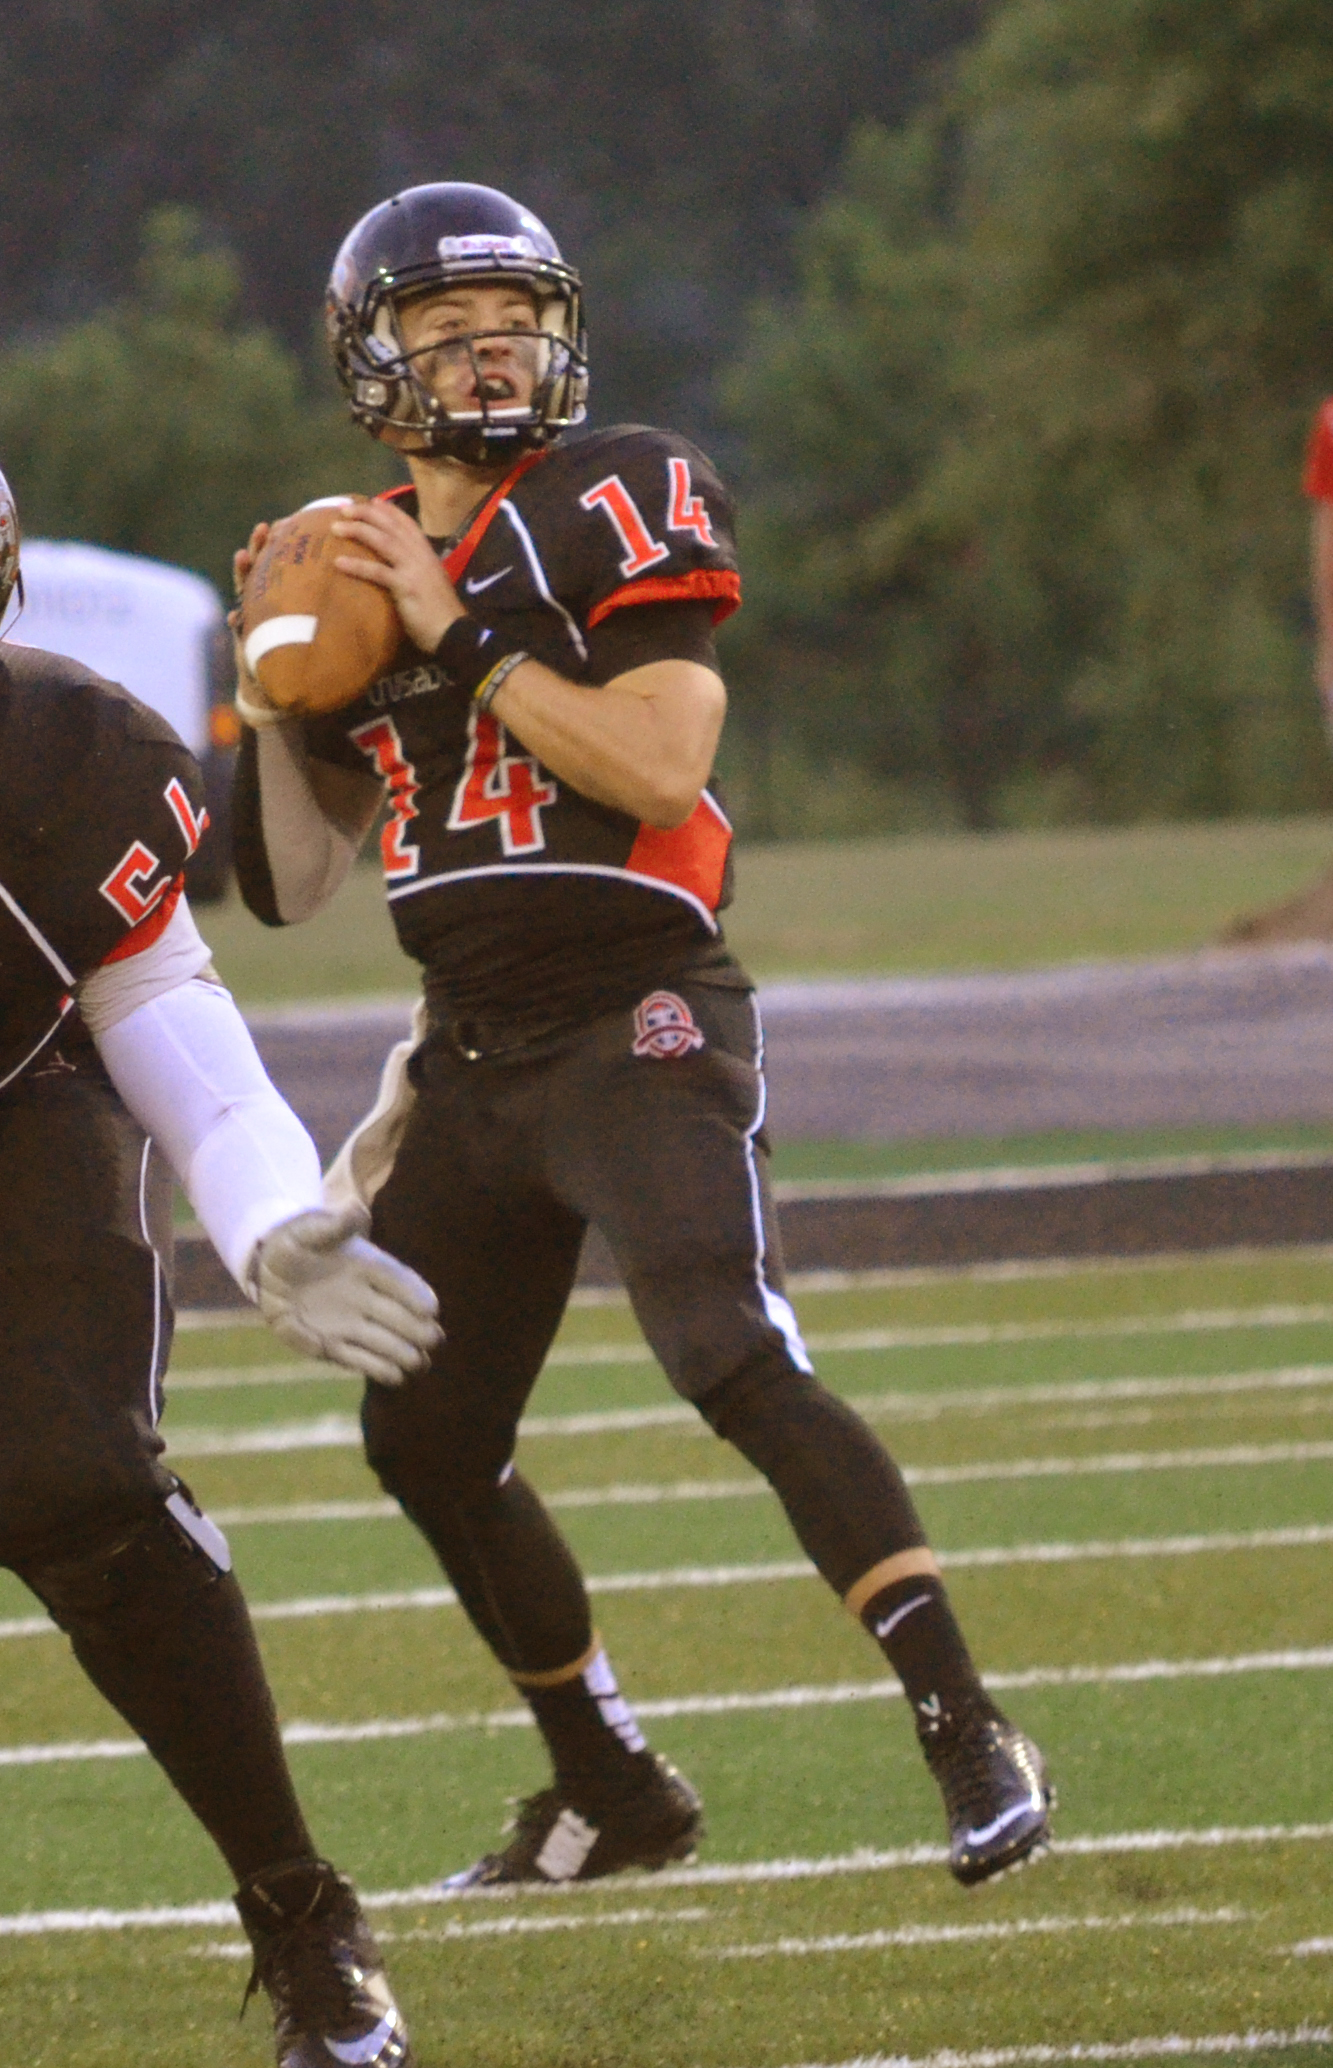 Quarter Back, Nelson Hughes, gets ready to throw the ball to the other side of the field